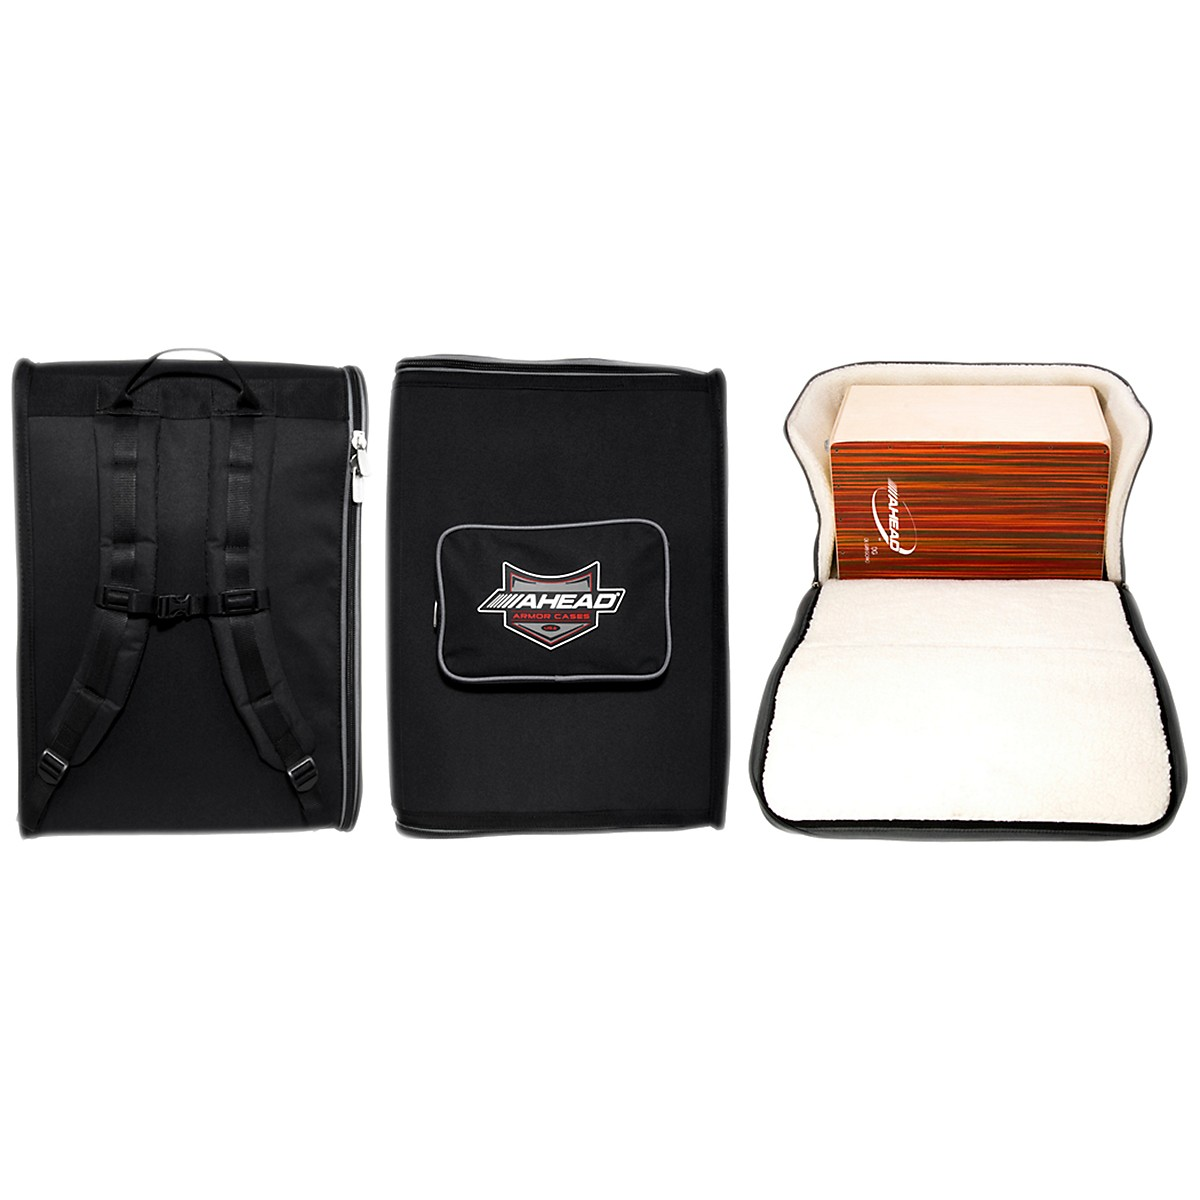 Ahead Armor Cases Cajon Deluxe Case with Backpack Straps